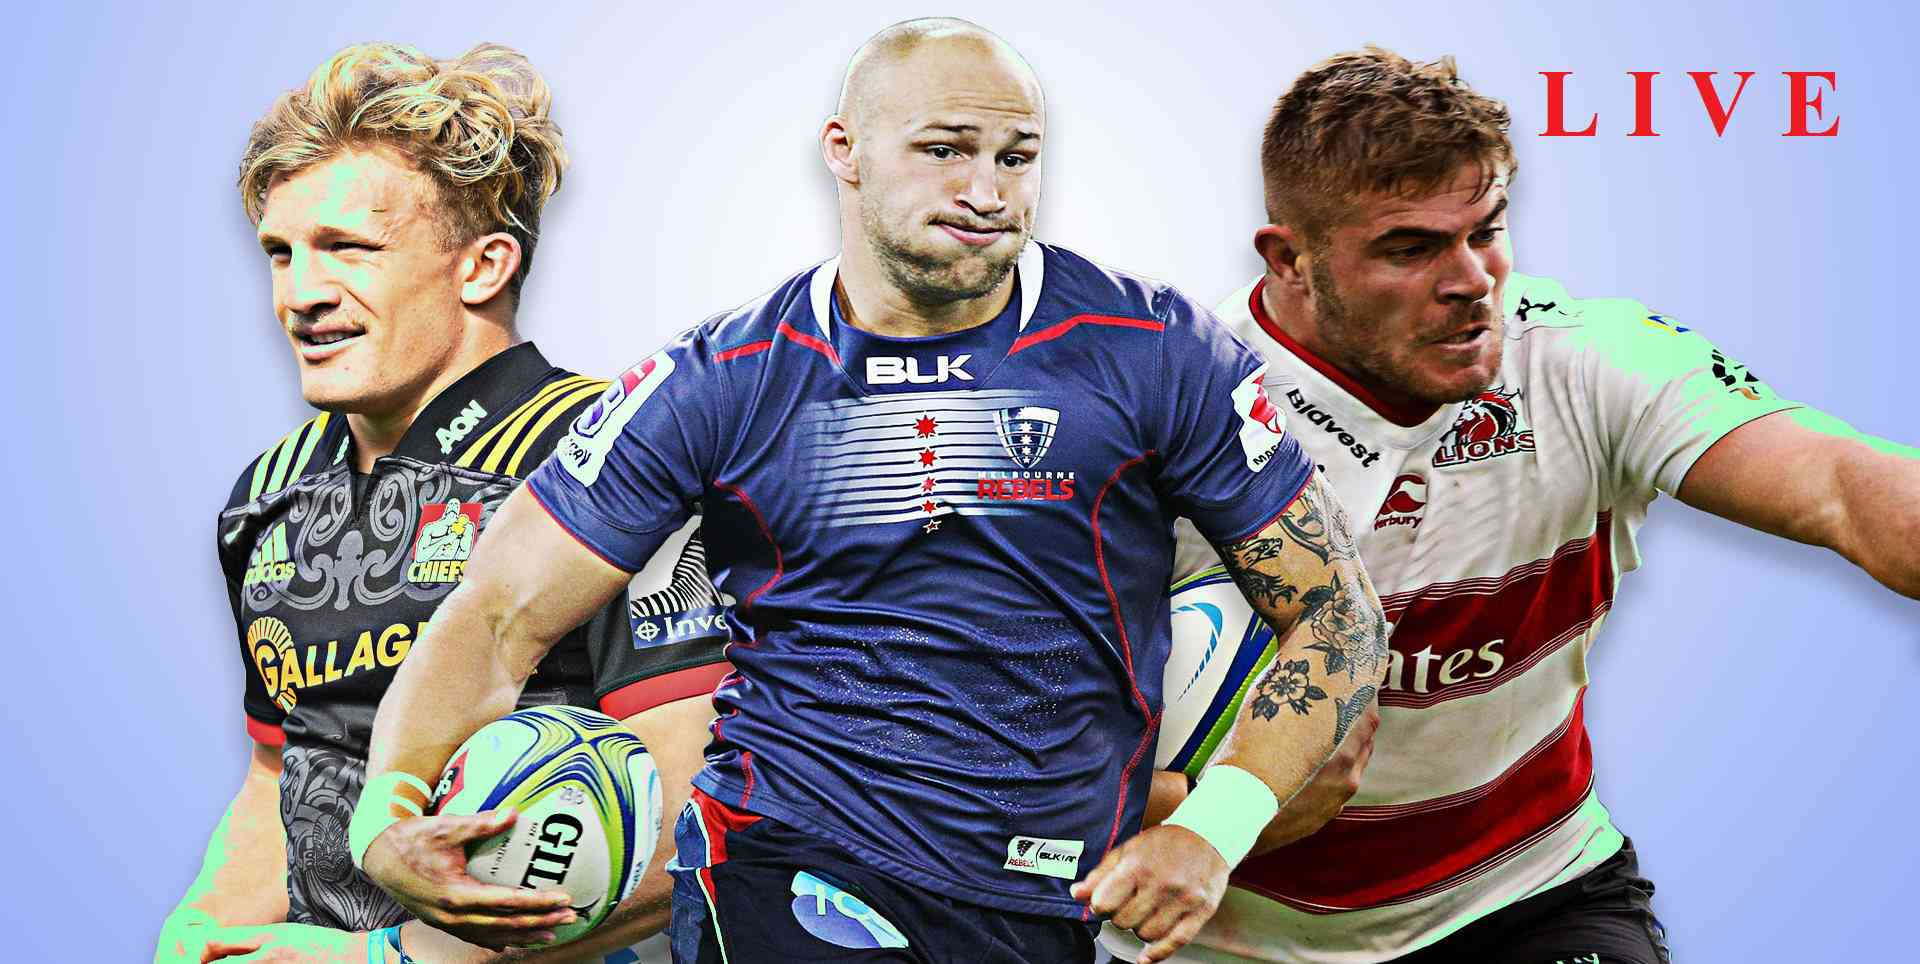 live-fiji-vs-england-rugby-streaming